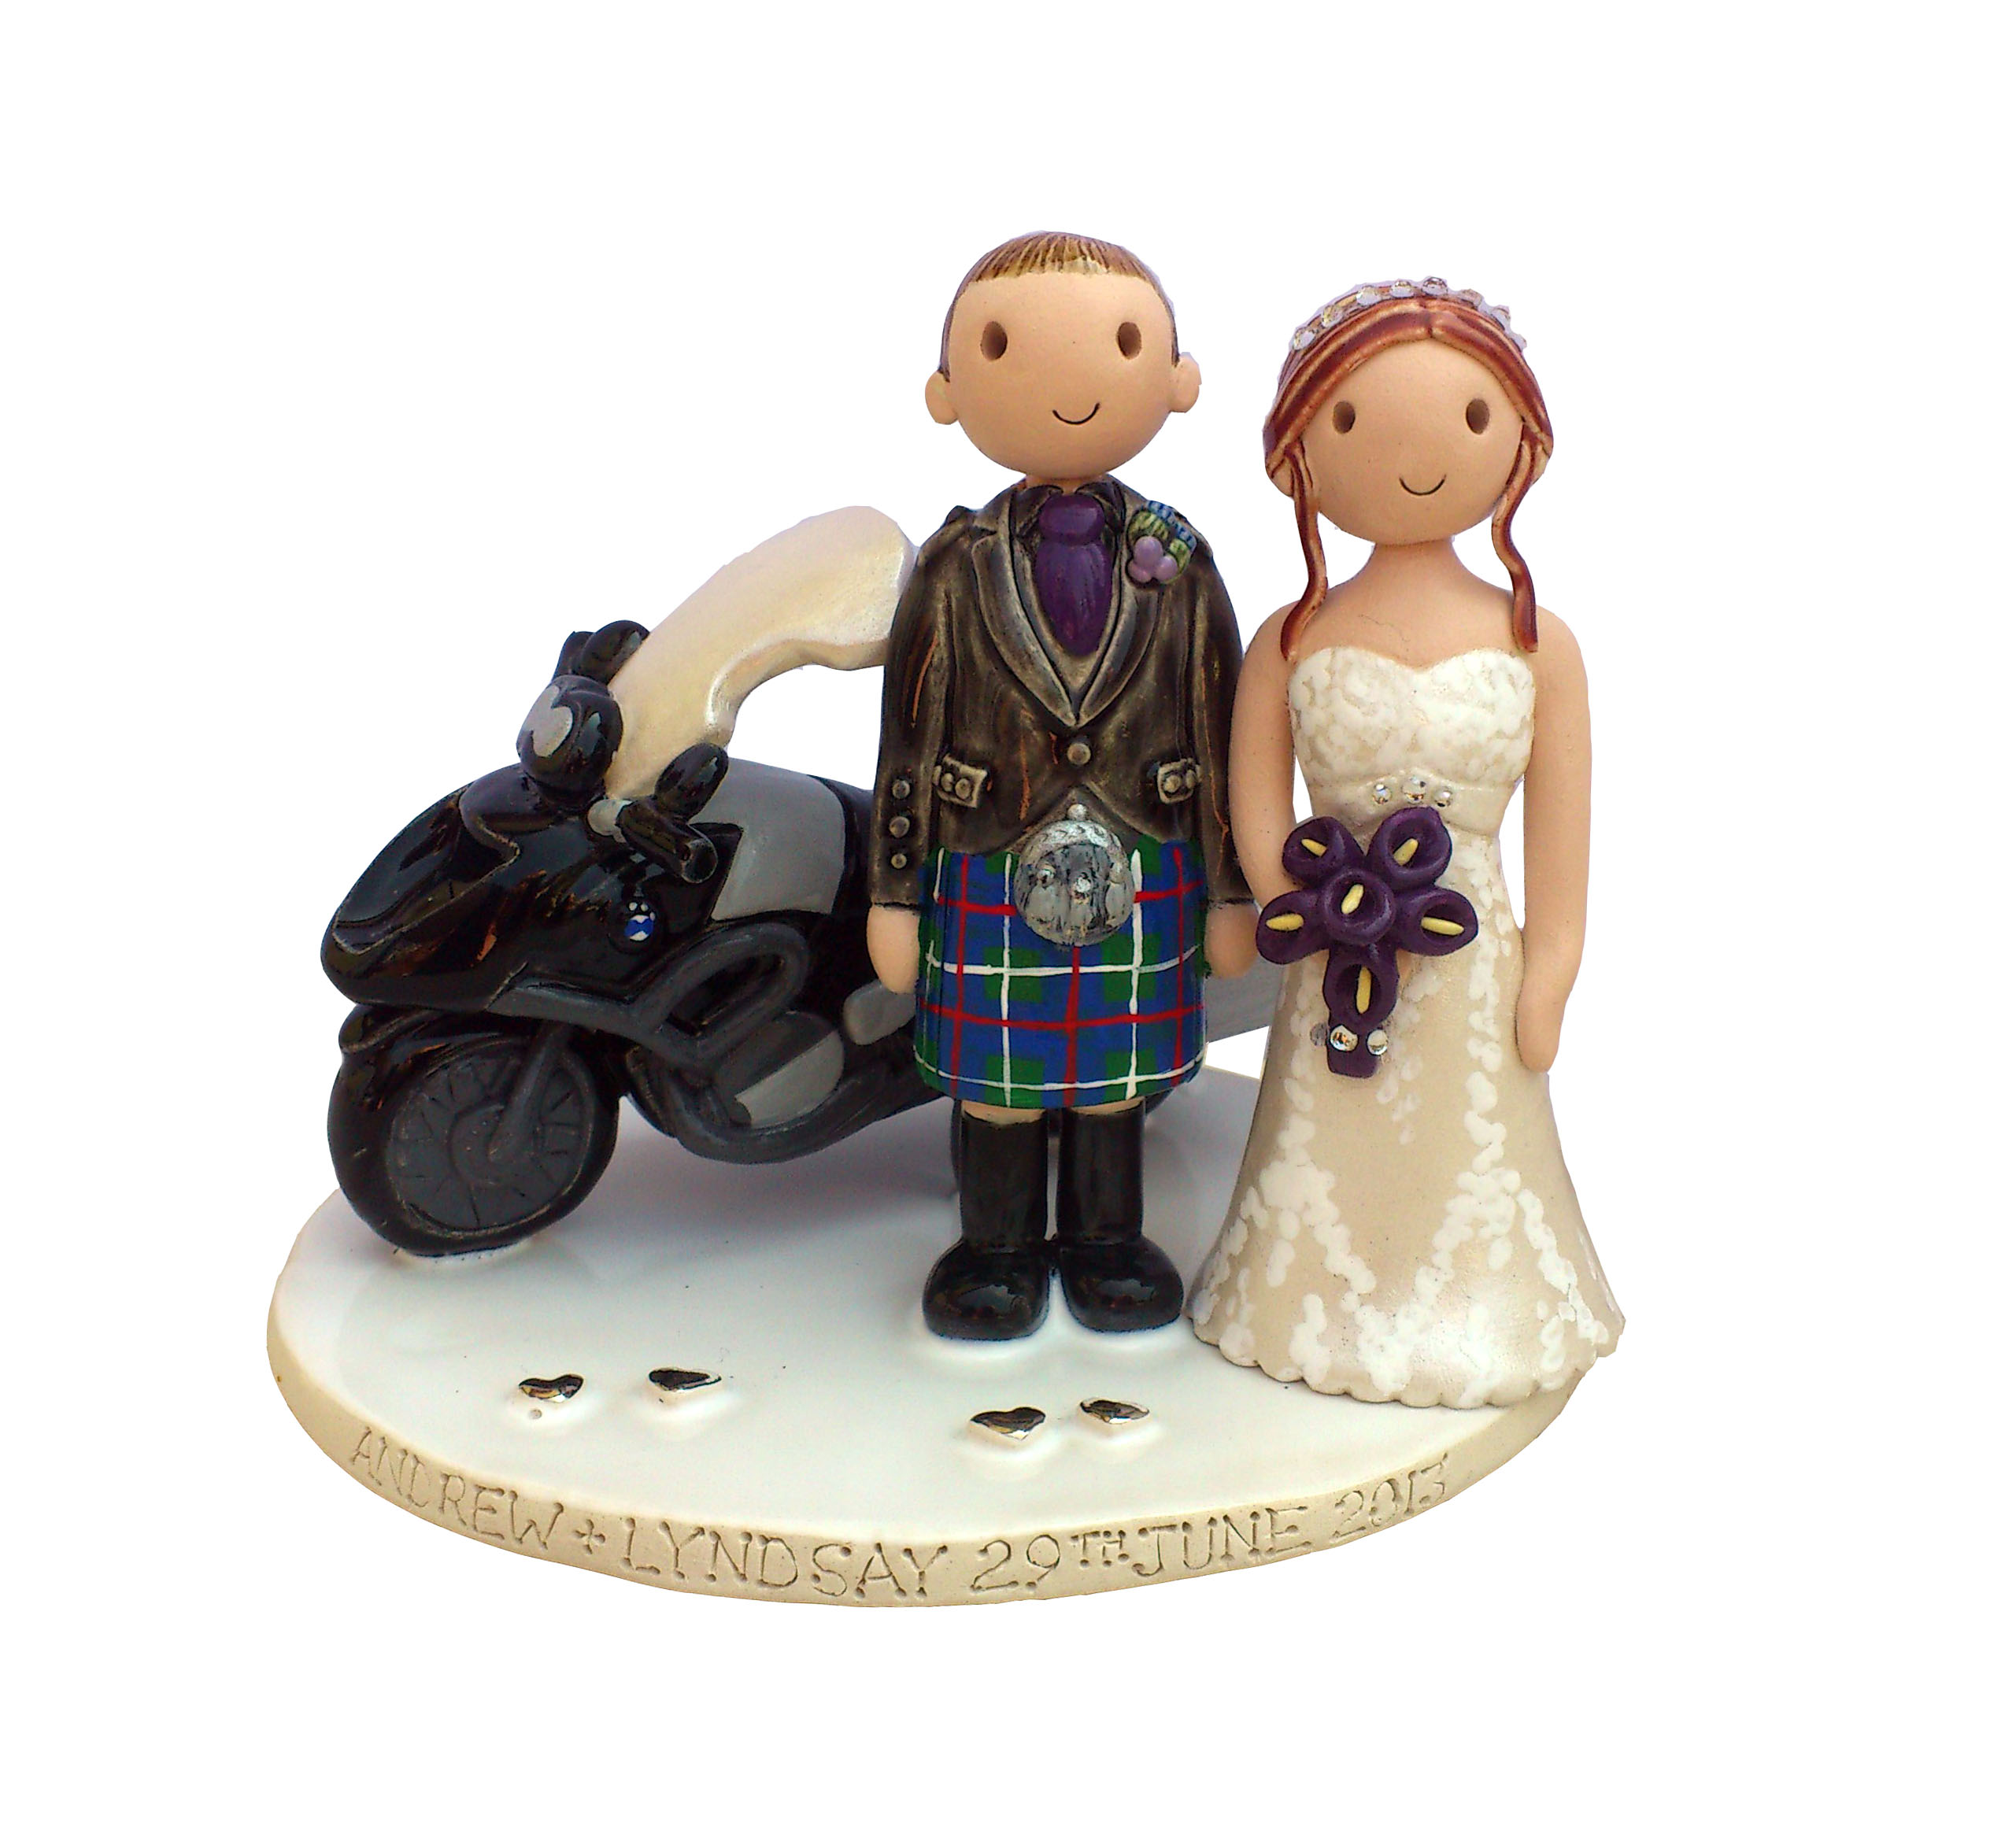 Cake Toppers Uk Wedding : Wedding Cake Toppers Gallery. Personalised Cake Topper ...